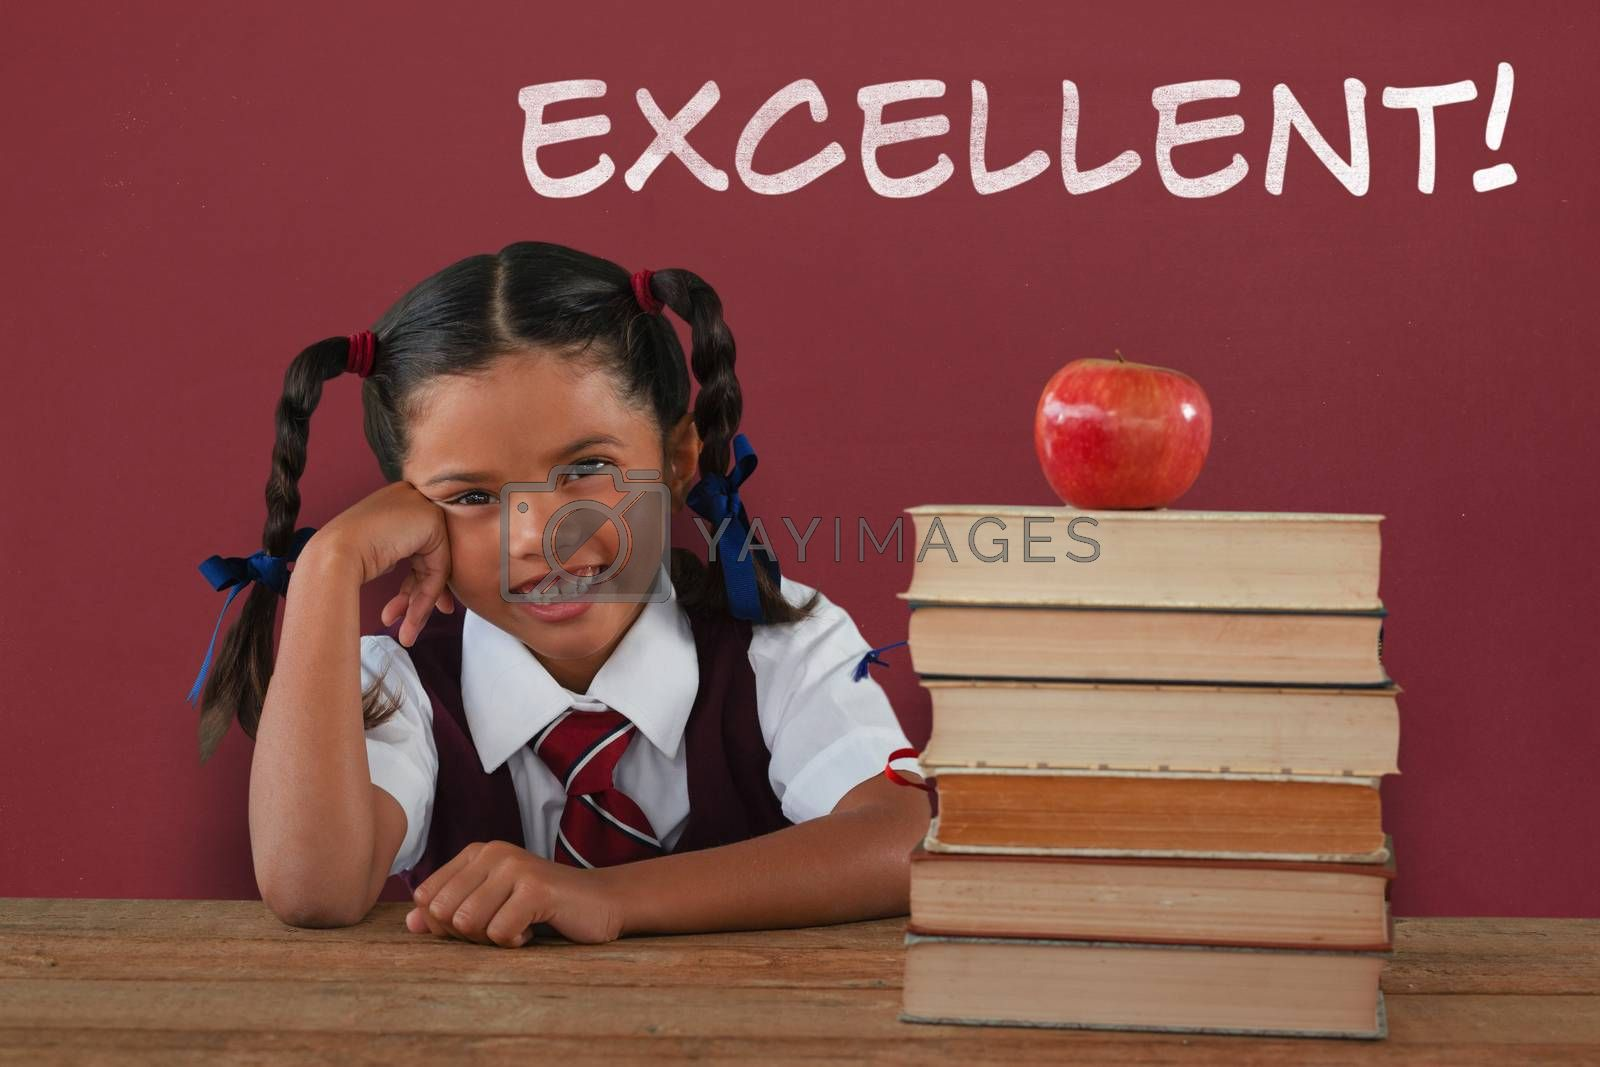 Composite image of schoolgirl leaning by books and apple on desk by Wavebreakmedia